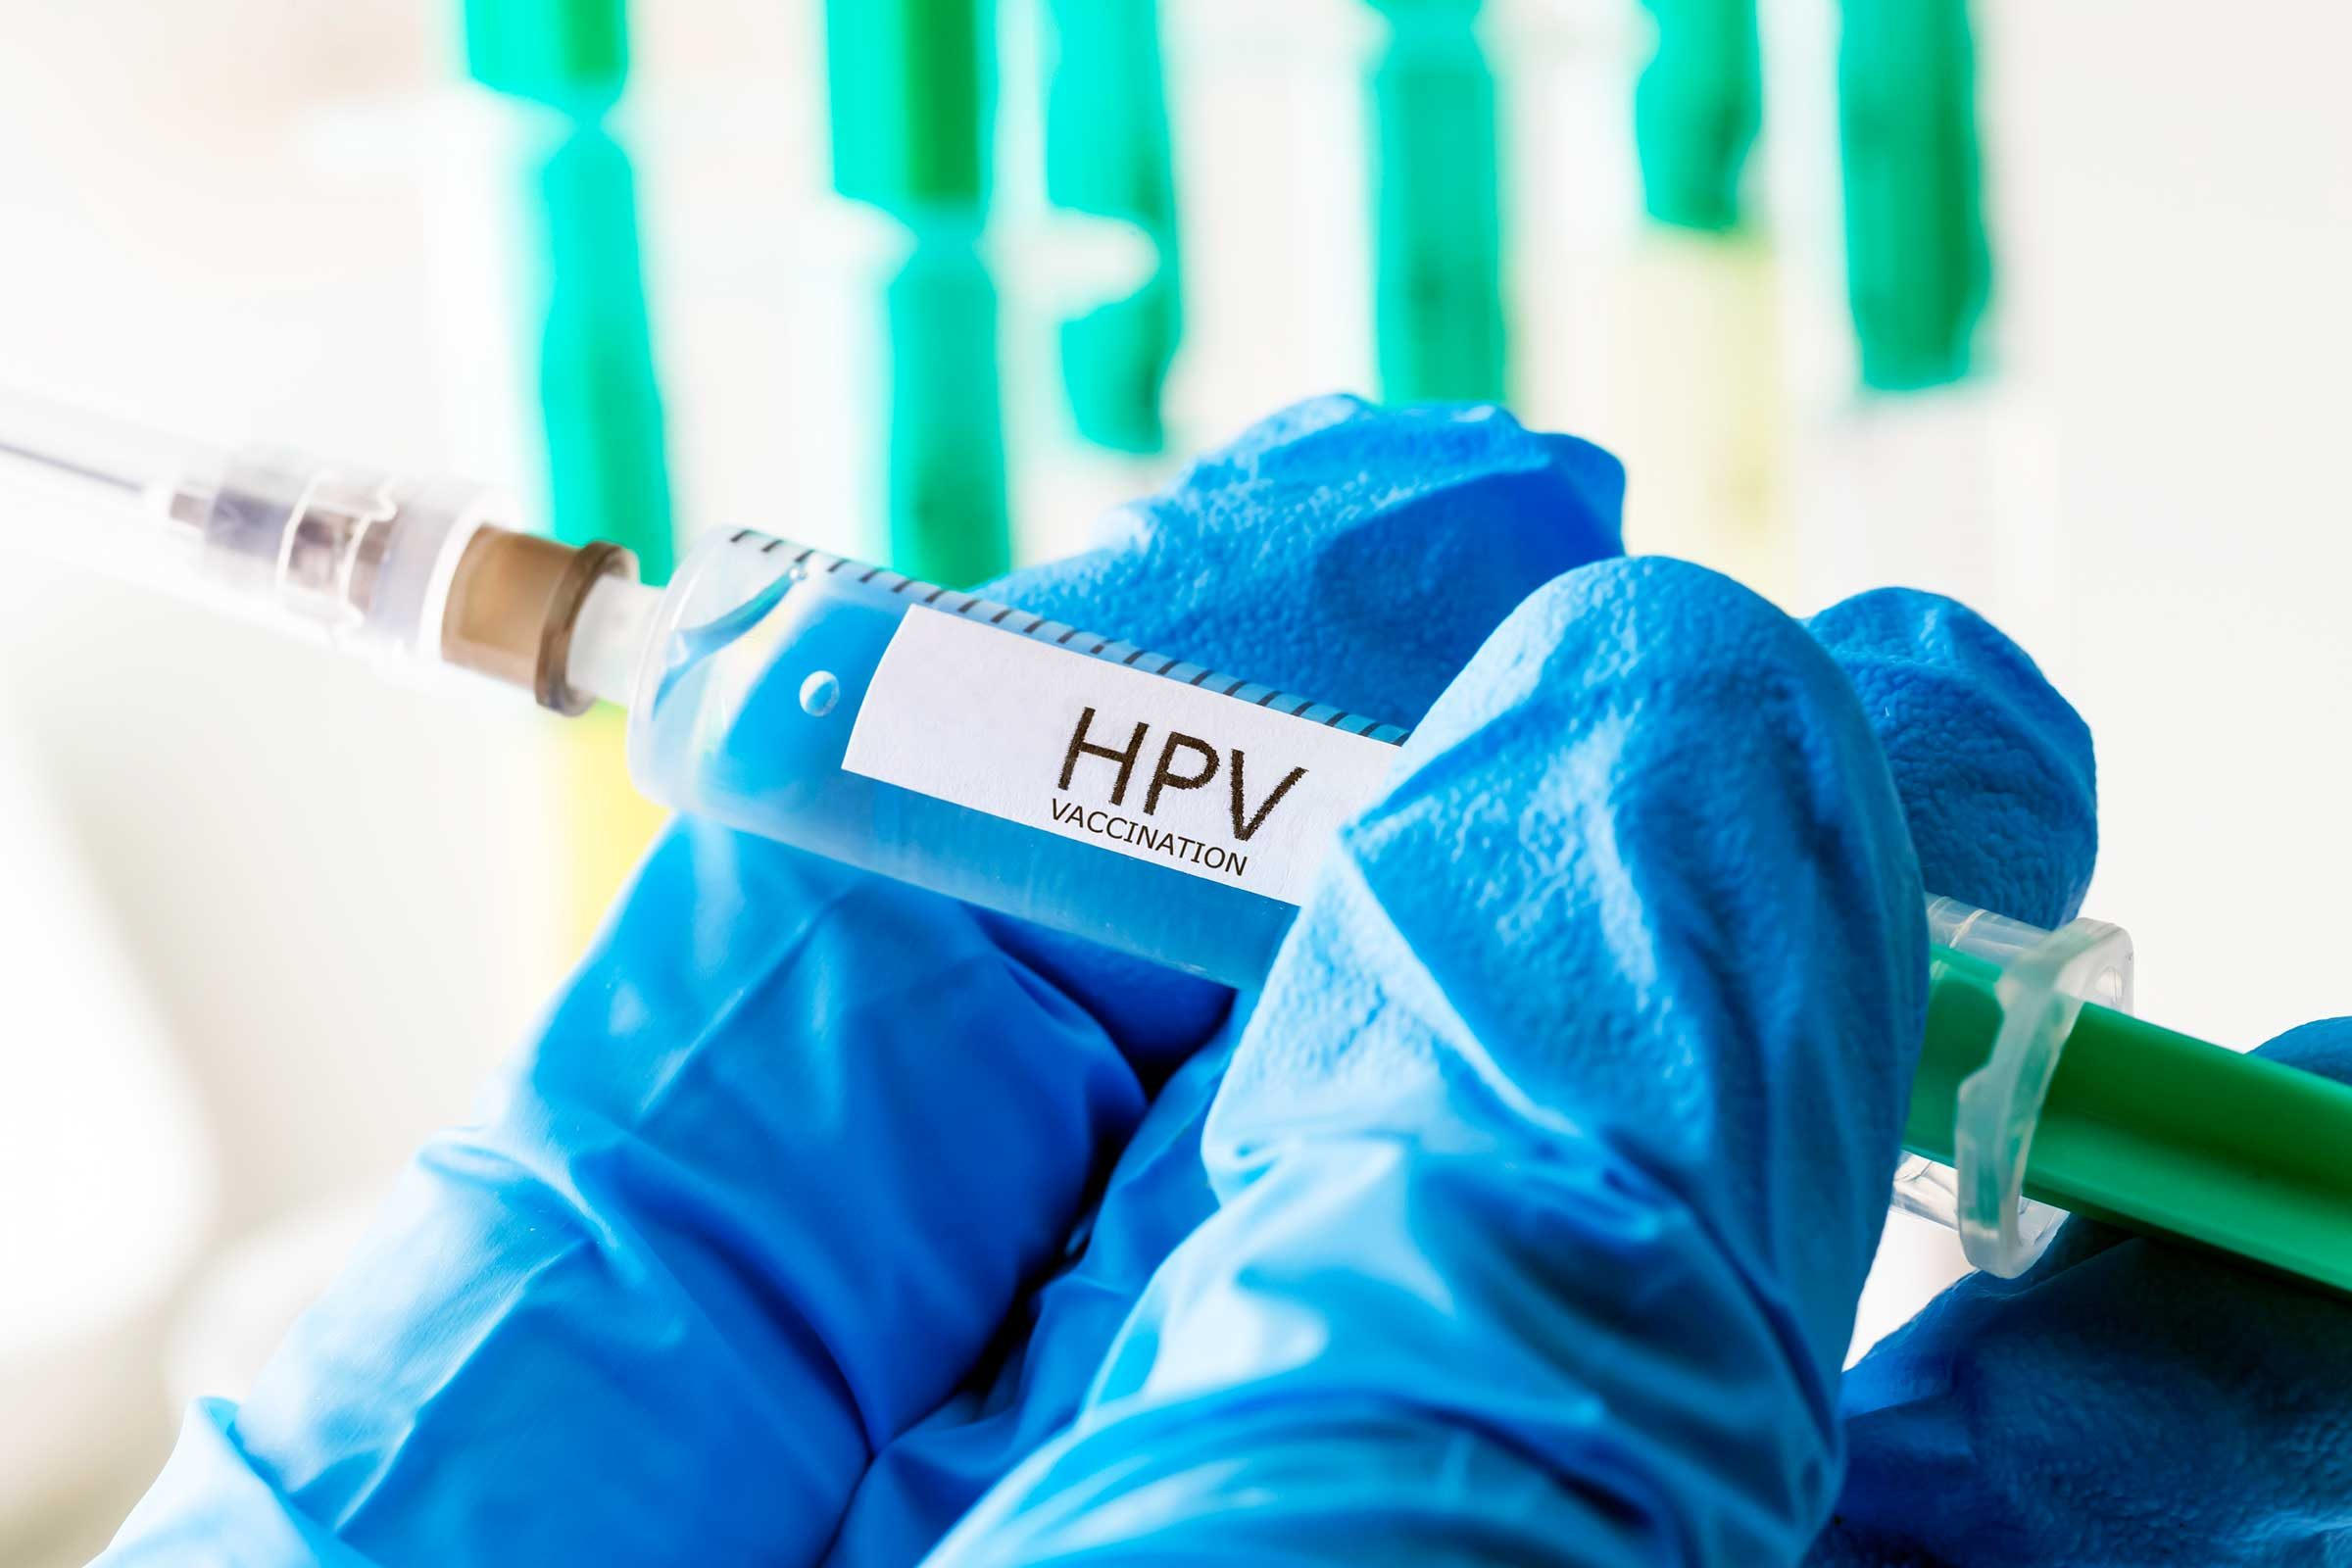 Facts About the CDC's New HPV Vaccine Guidelines | Reader ...Hpv Vaccine